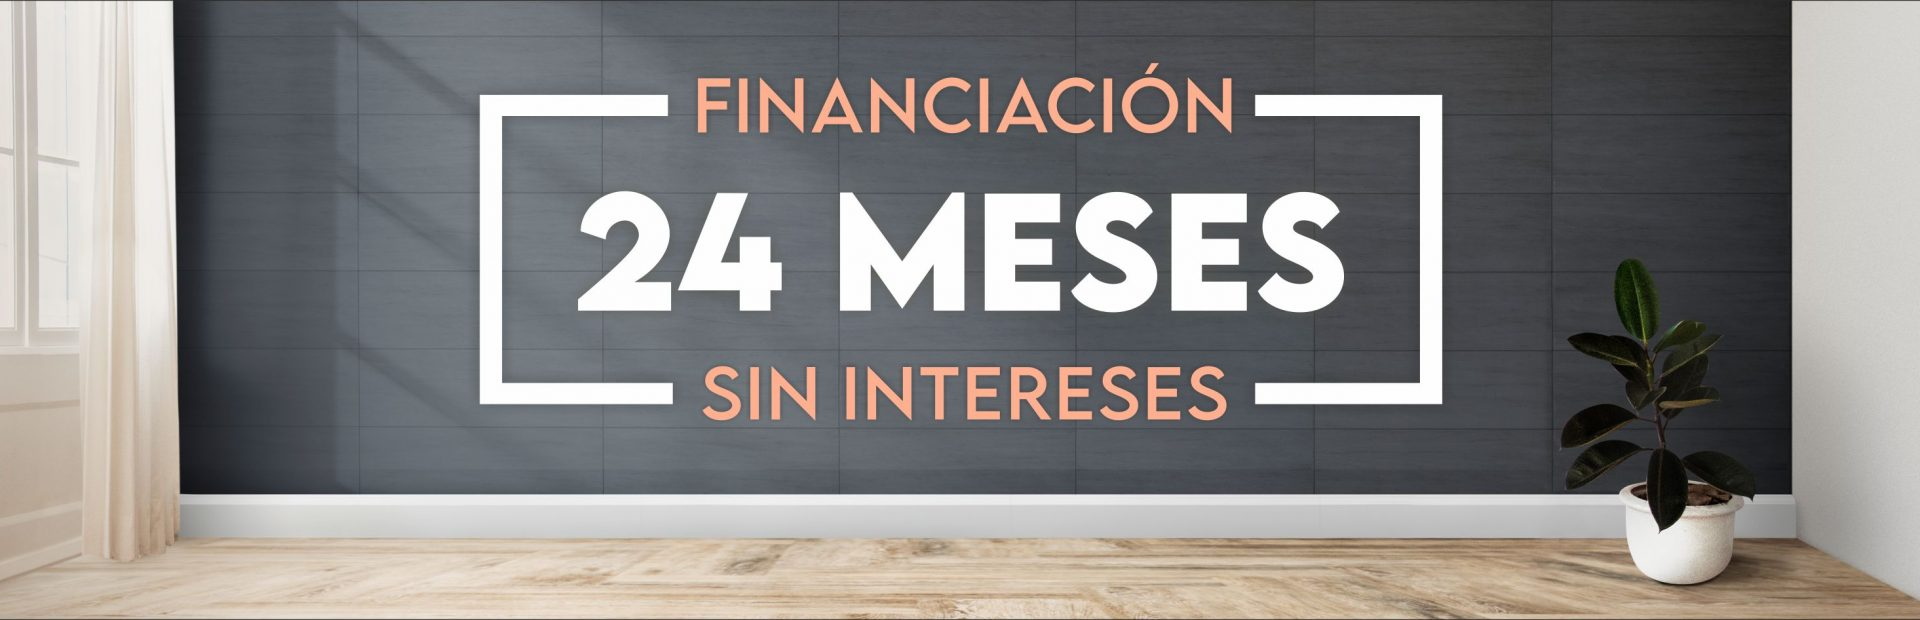 financiación 24 meses sin intereses